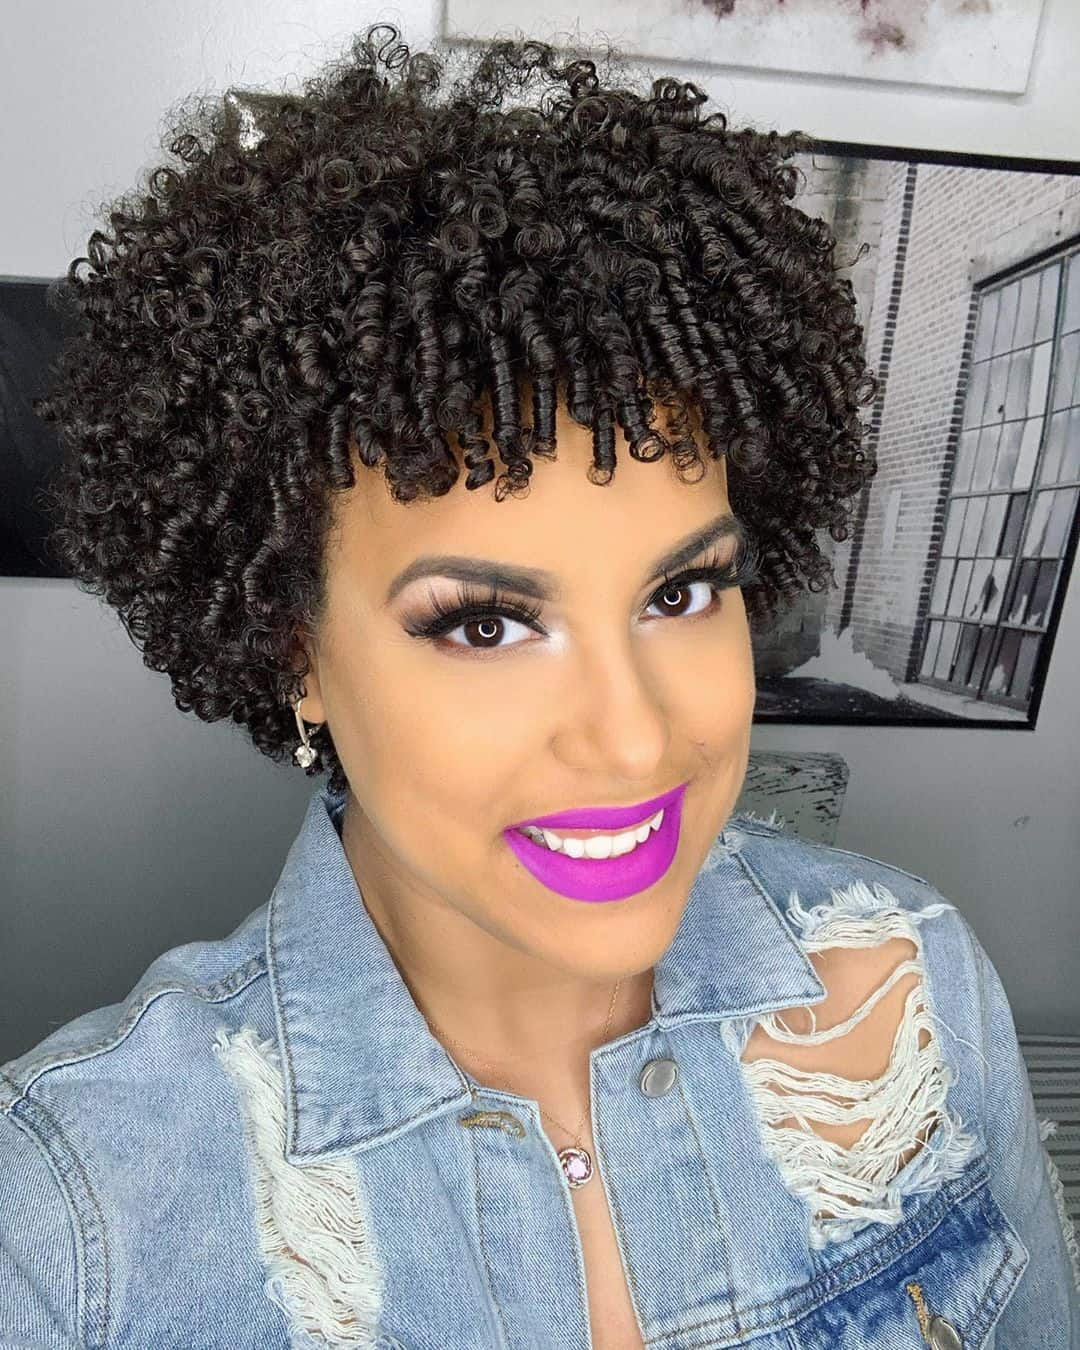 Short natural hair styling